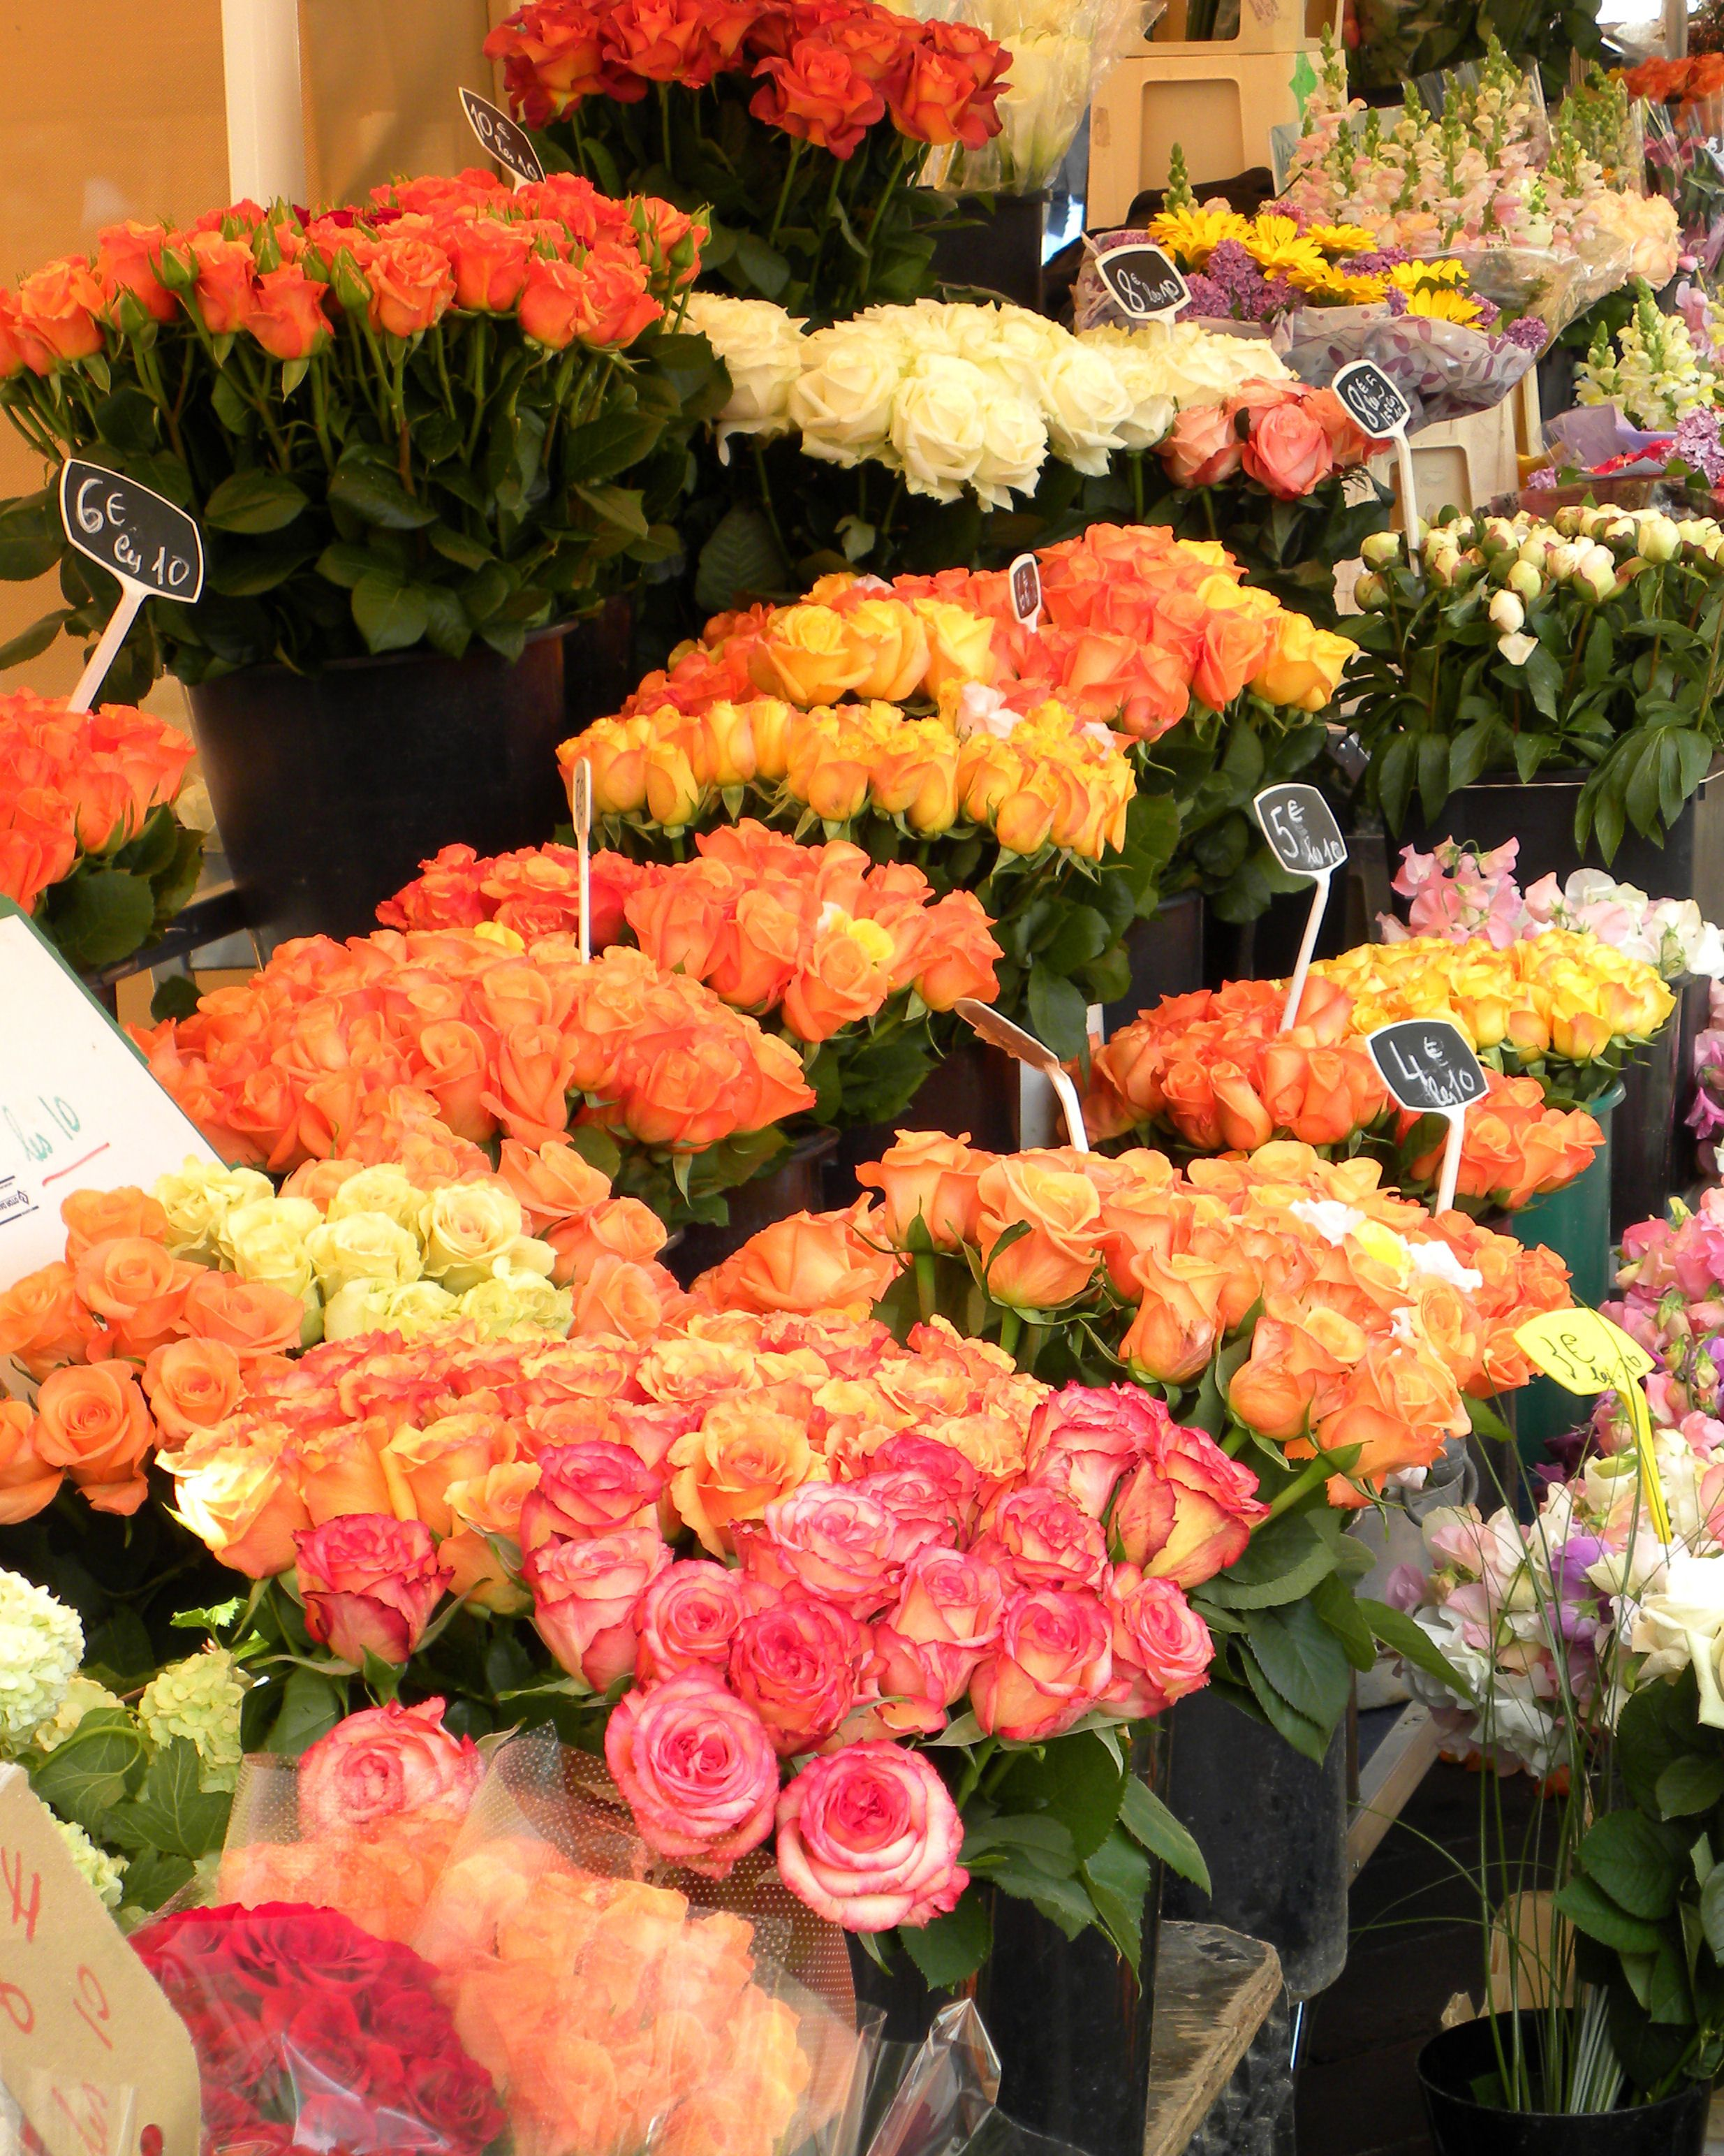 Cours saleya flower market in nice france beautiful flowers of cours saleya flower market in nice france beautiful flowers of all sorts and izmirmasajfo